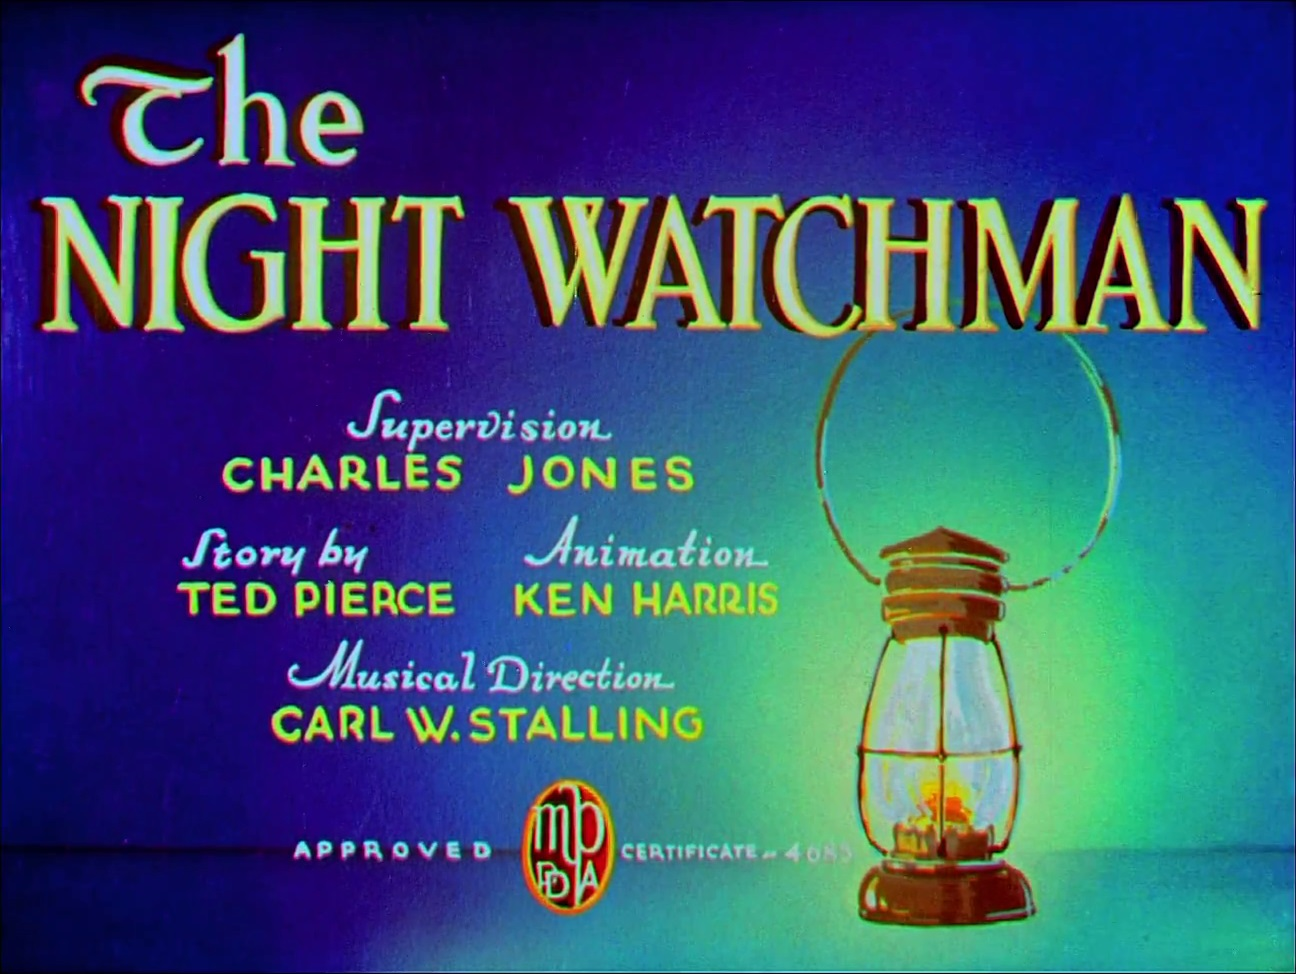 File:06nightwatchman.jpg